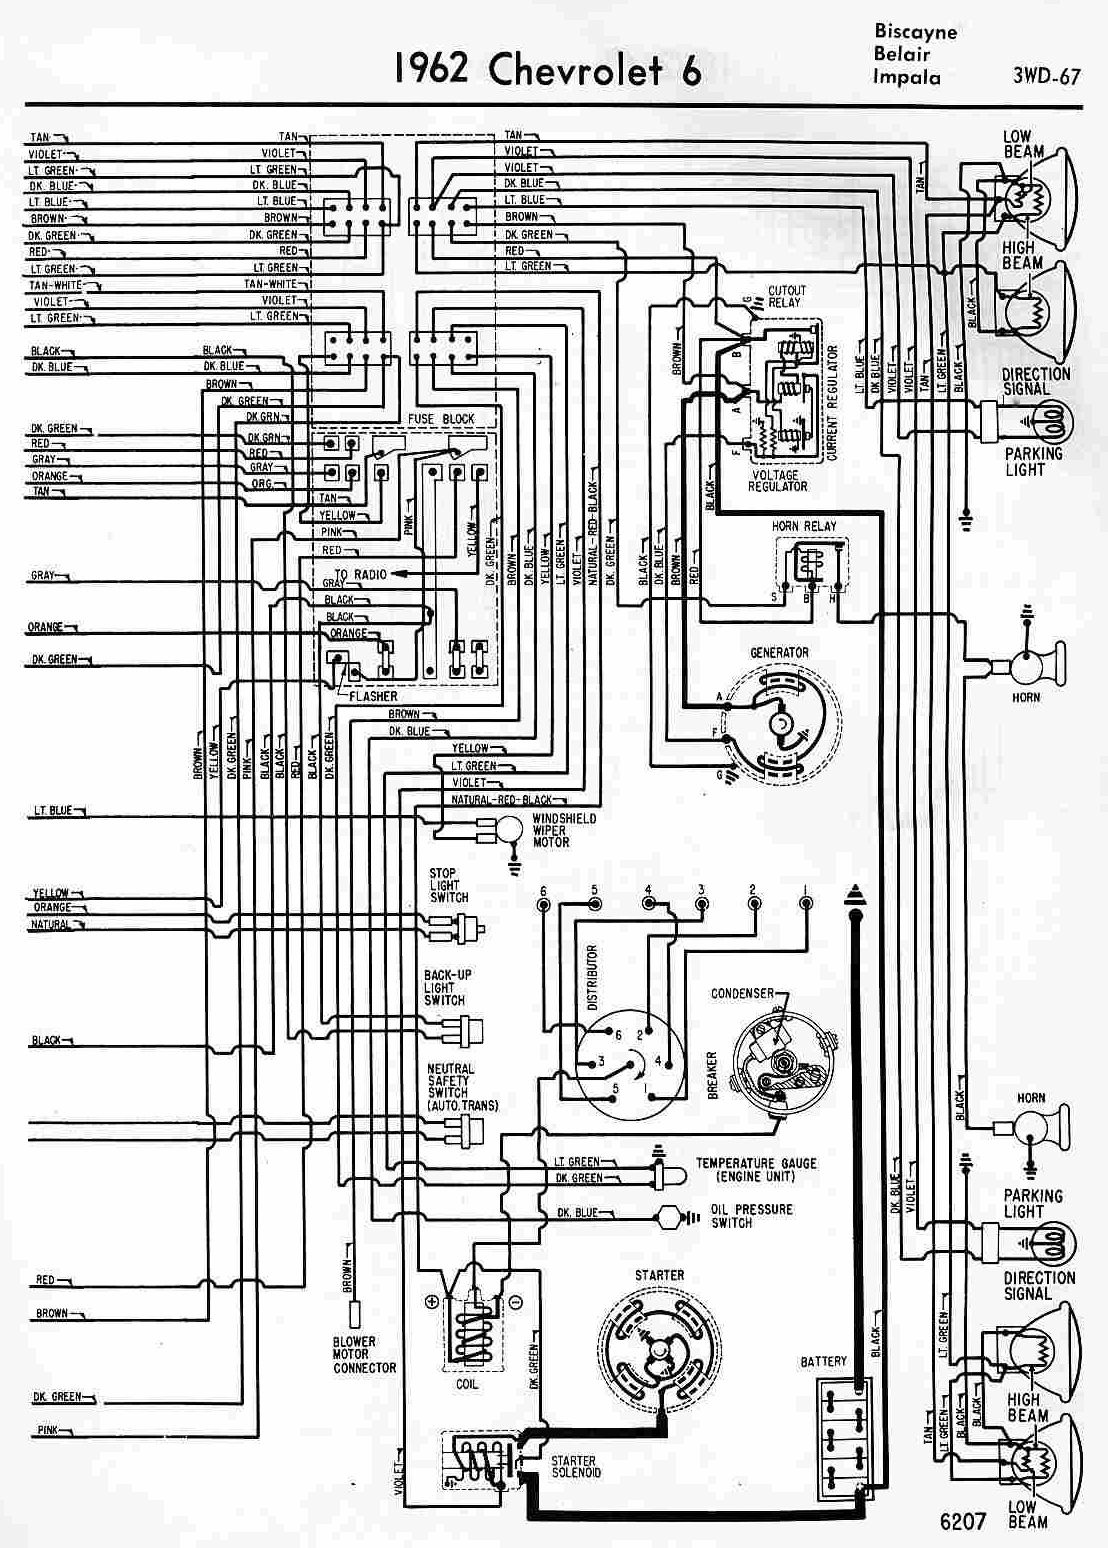 1962+Chevrolet+6+Biscayne%252C+Belair+and+Impala+Wiring+Diagram 2010 impala wiring diagram wiring diagram schematic name